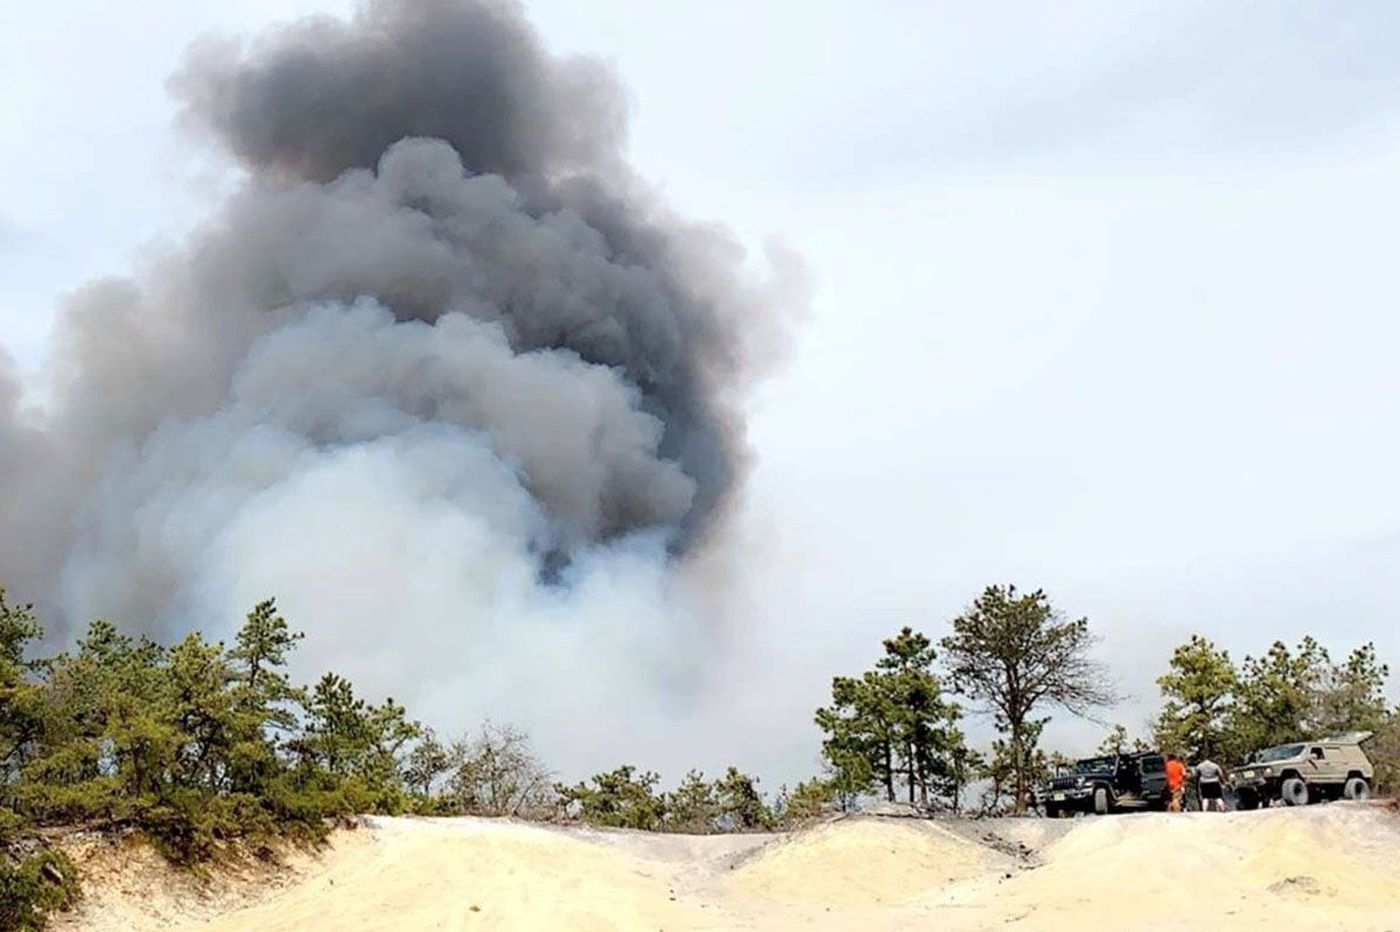 Police want to talk to men pictured next to trucks during big Pinelands fire